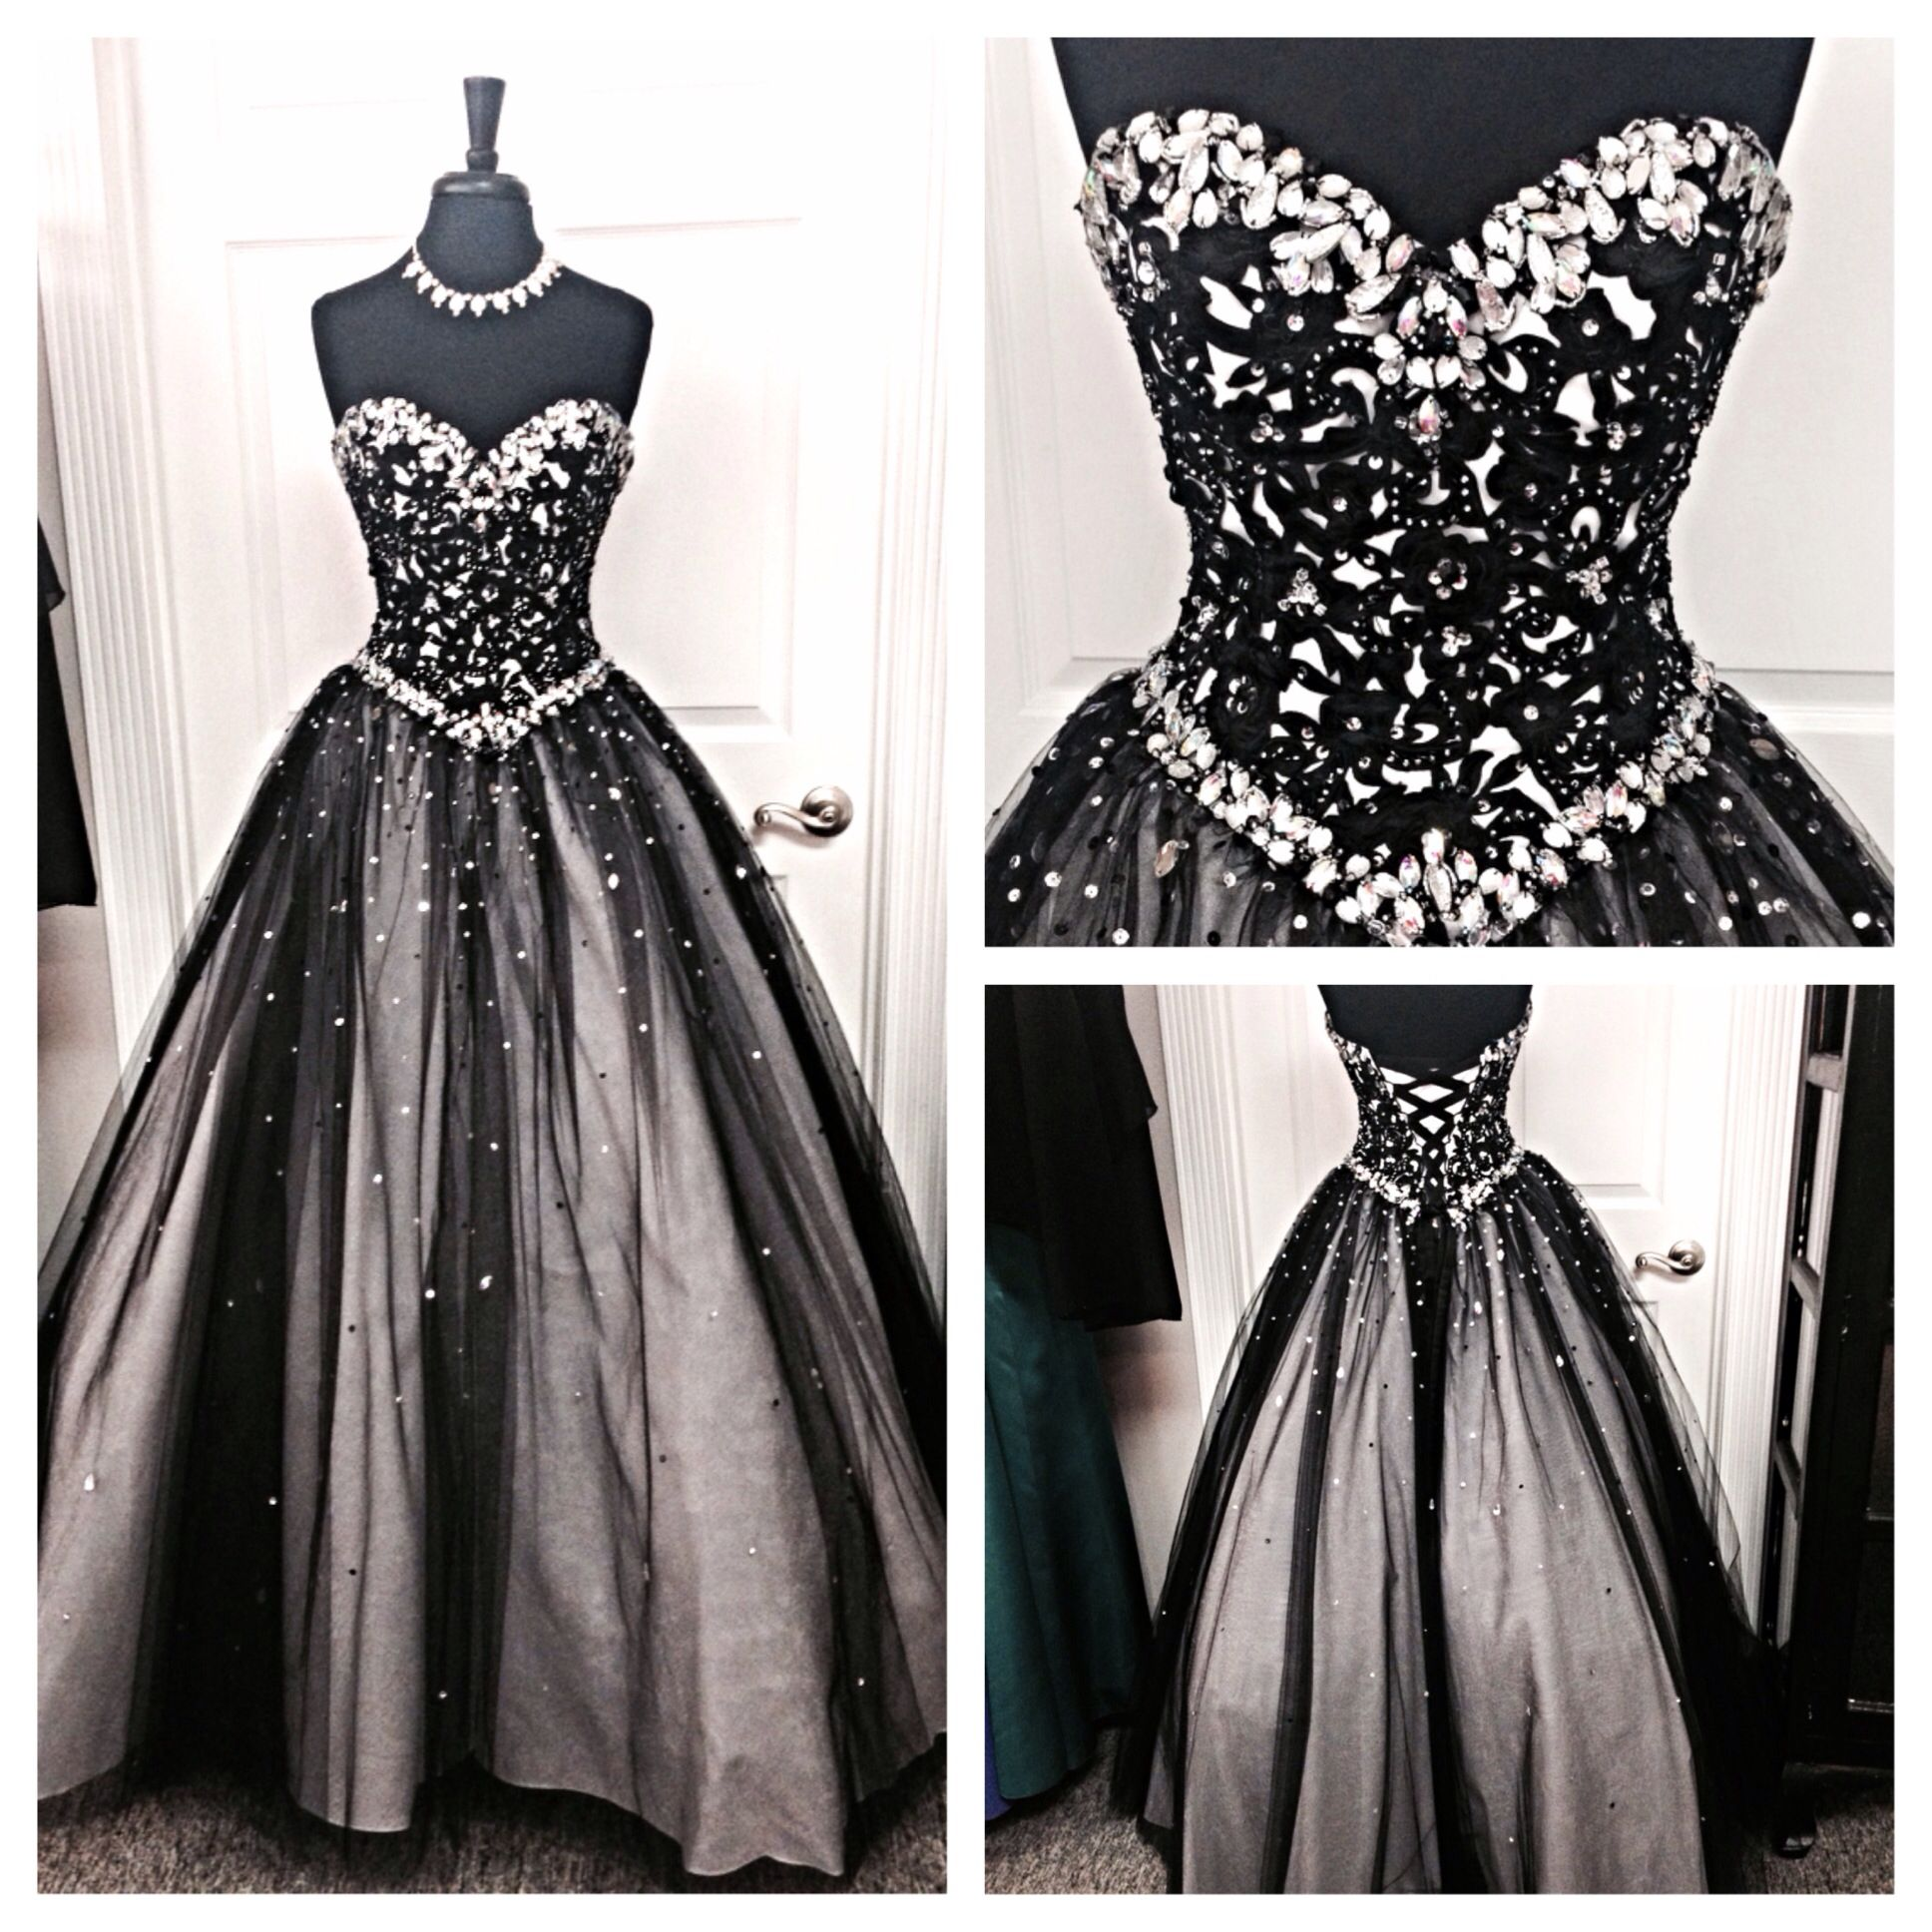 Sweatheart Neck Prom Dress,a-line B | Lace ball gowns, Ball gowns ...